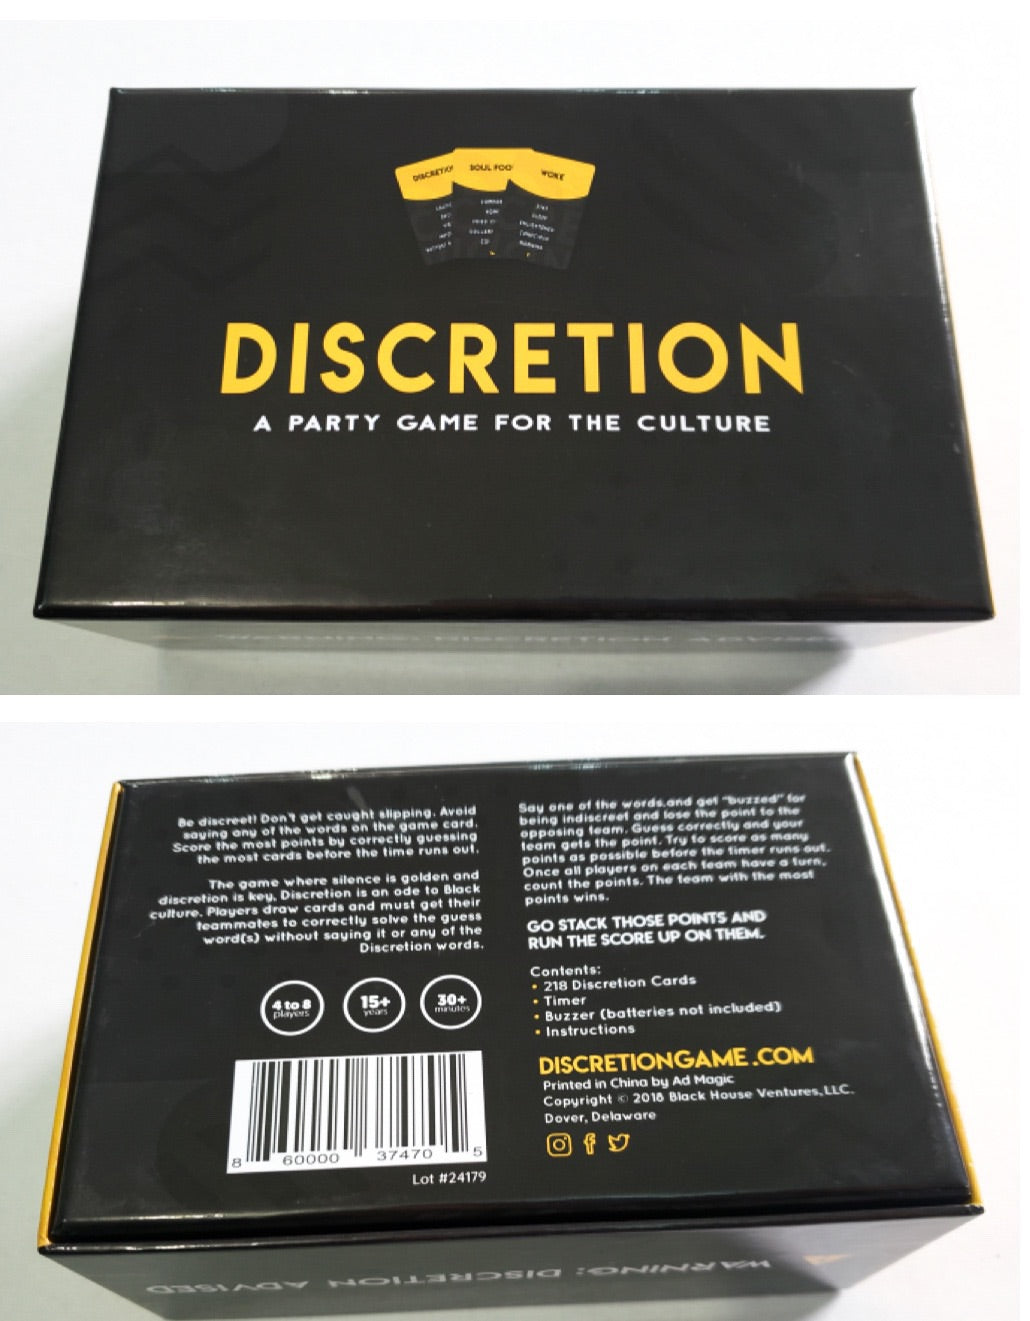 DISCRETION Game - Discretion Game